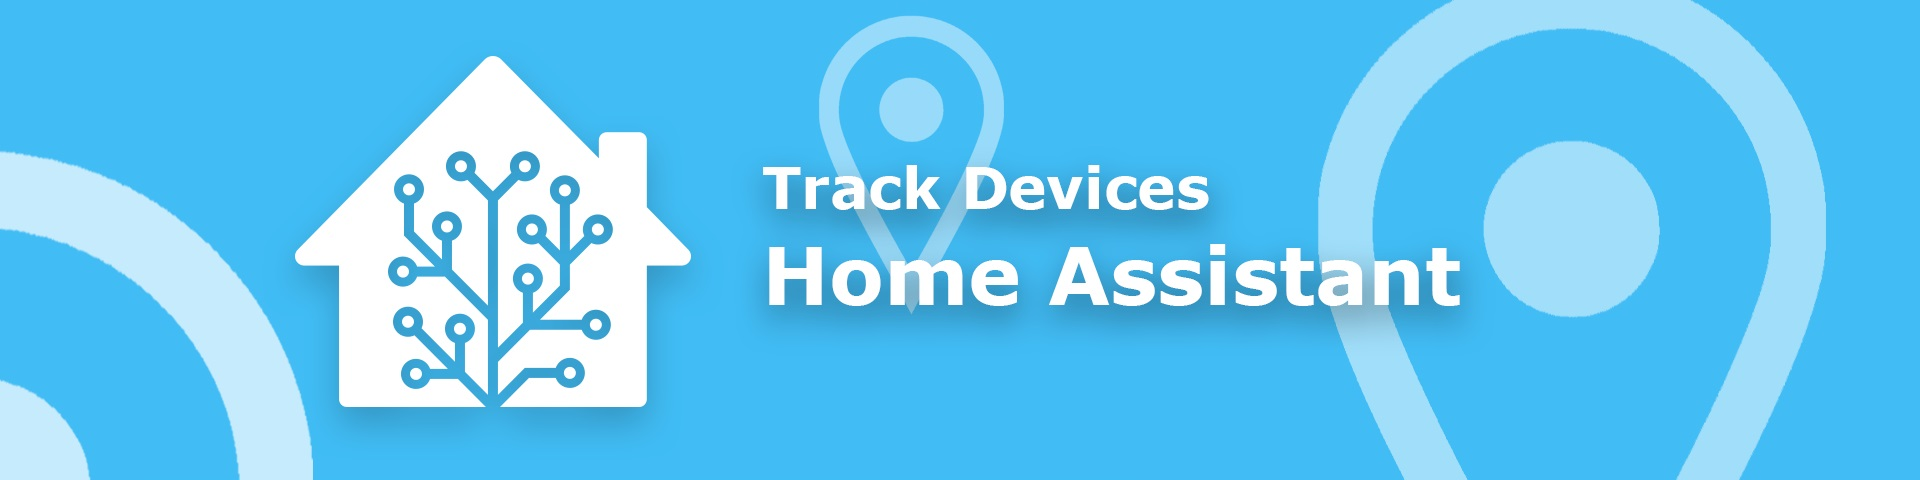 Track devices in Home Assistant